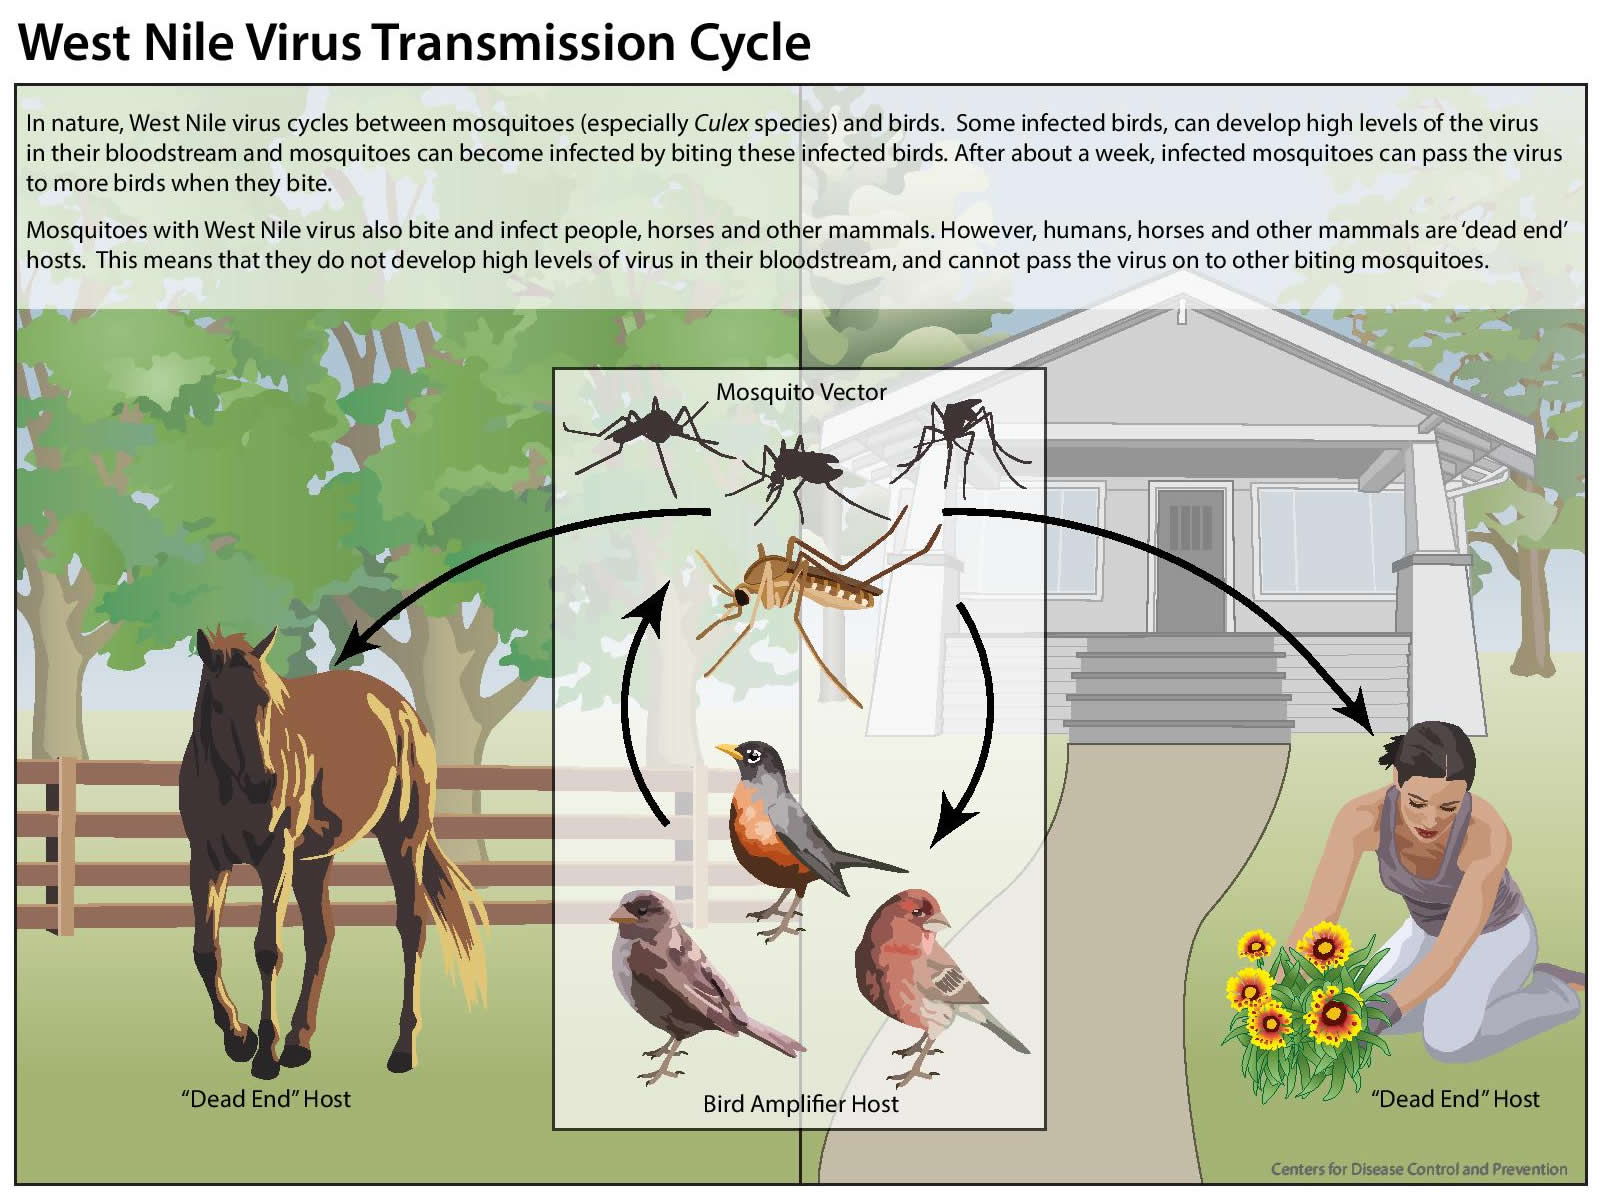 West Nile virus transmission